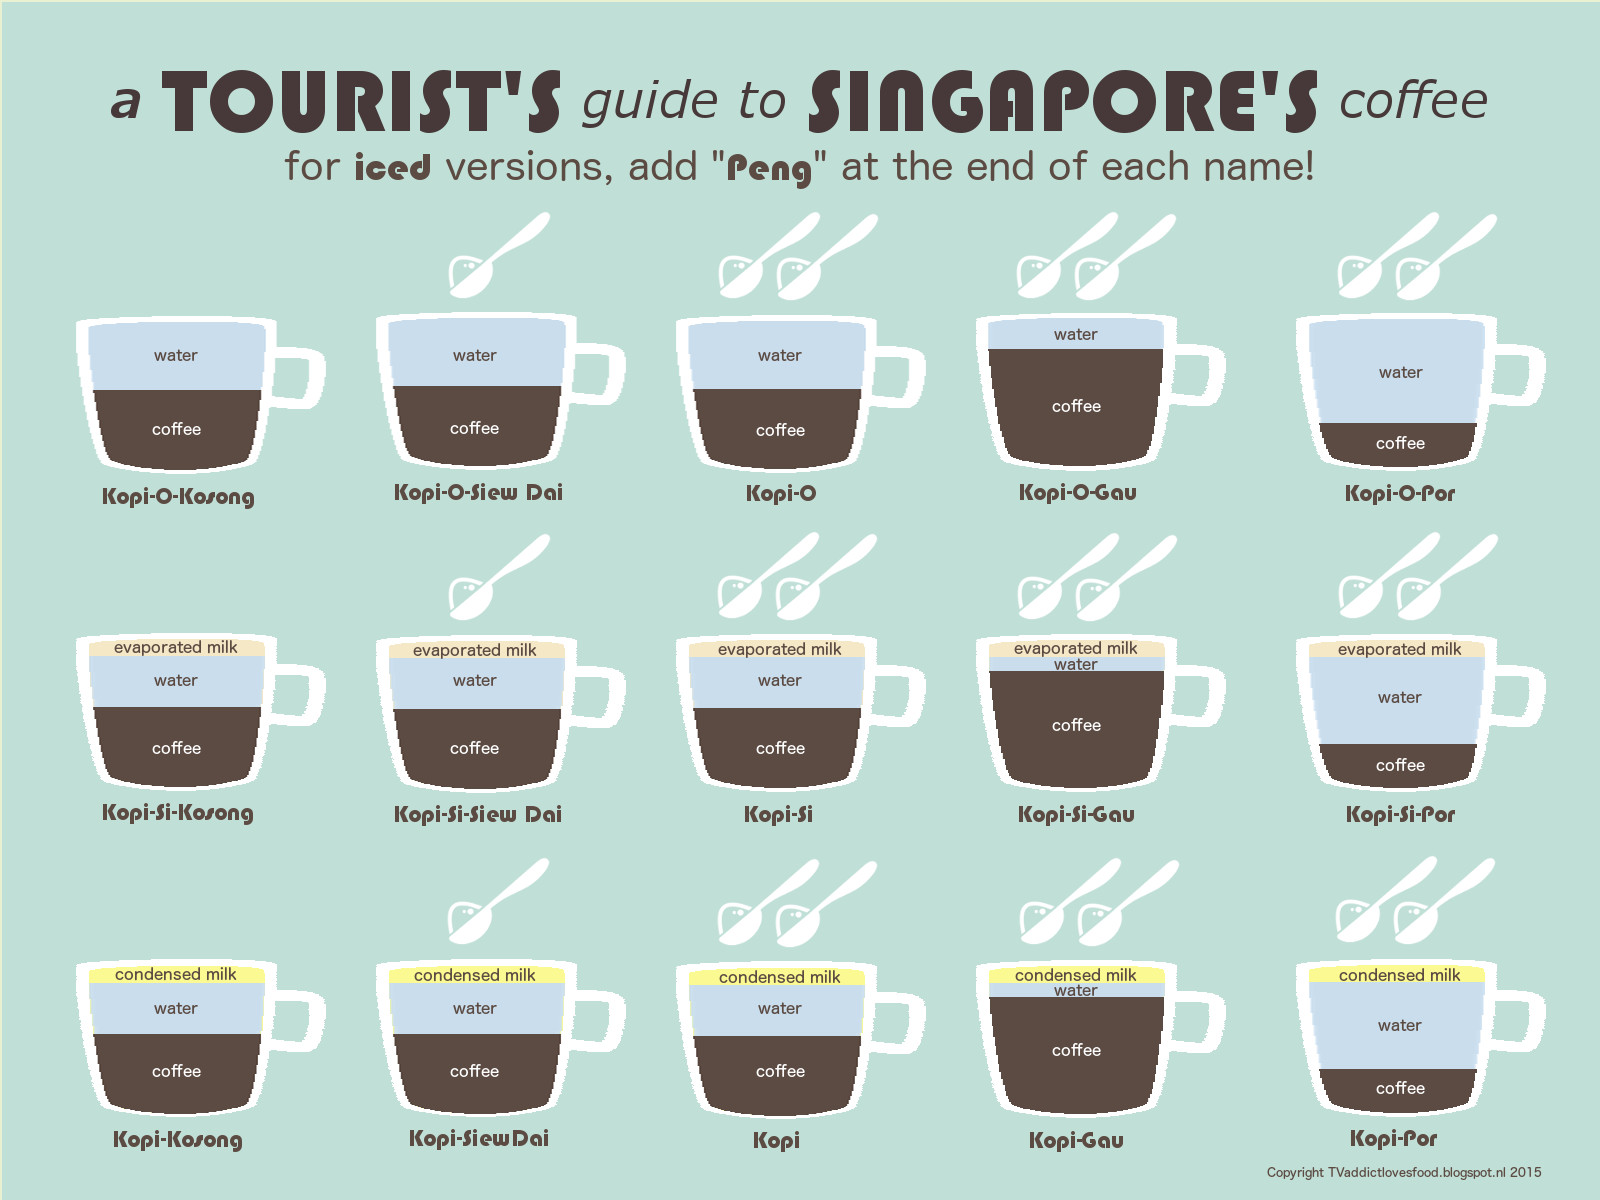 103fc1459c0 A tourist's guide to ordering drinks at a Singapore coffee shop ...